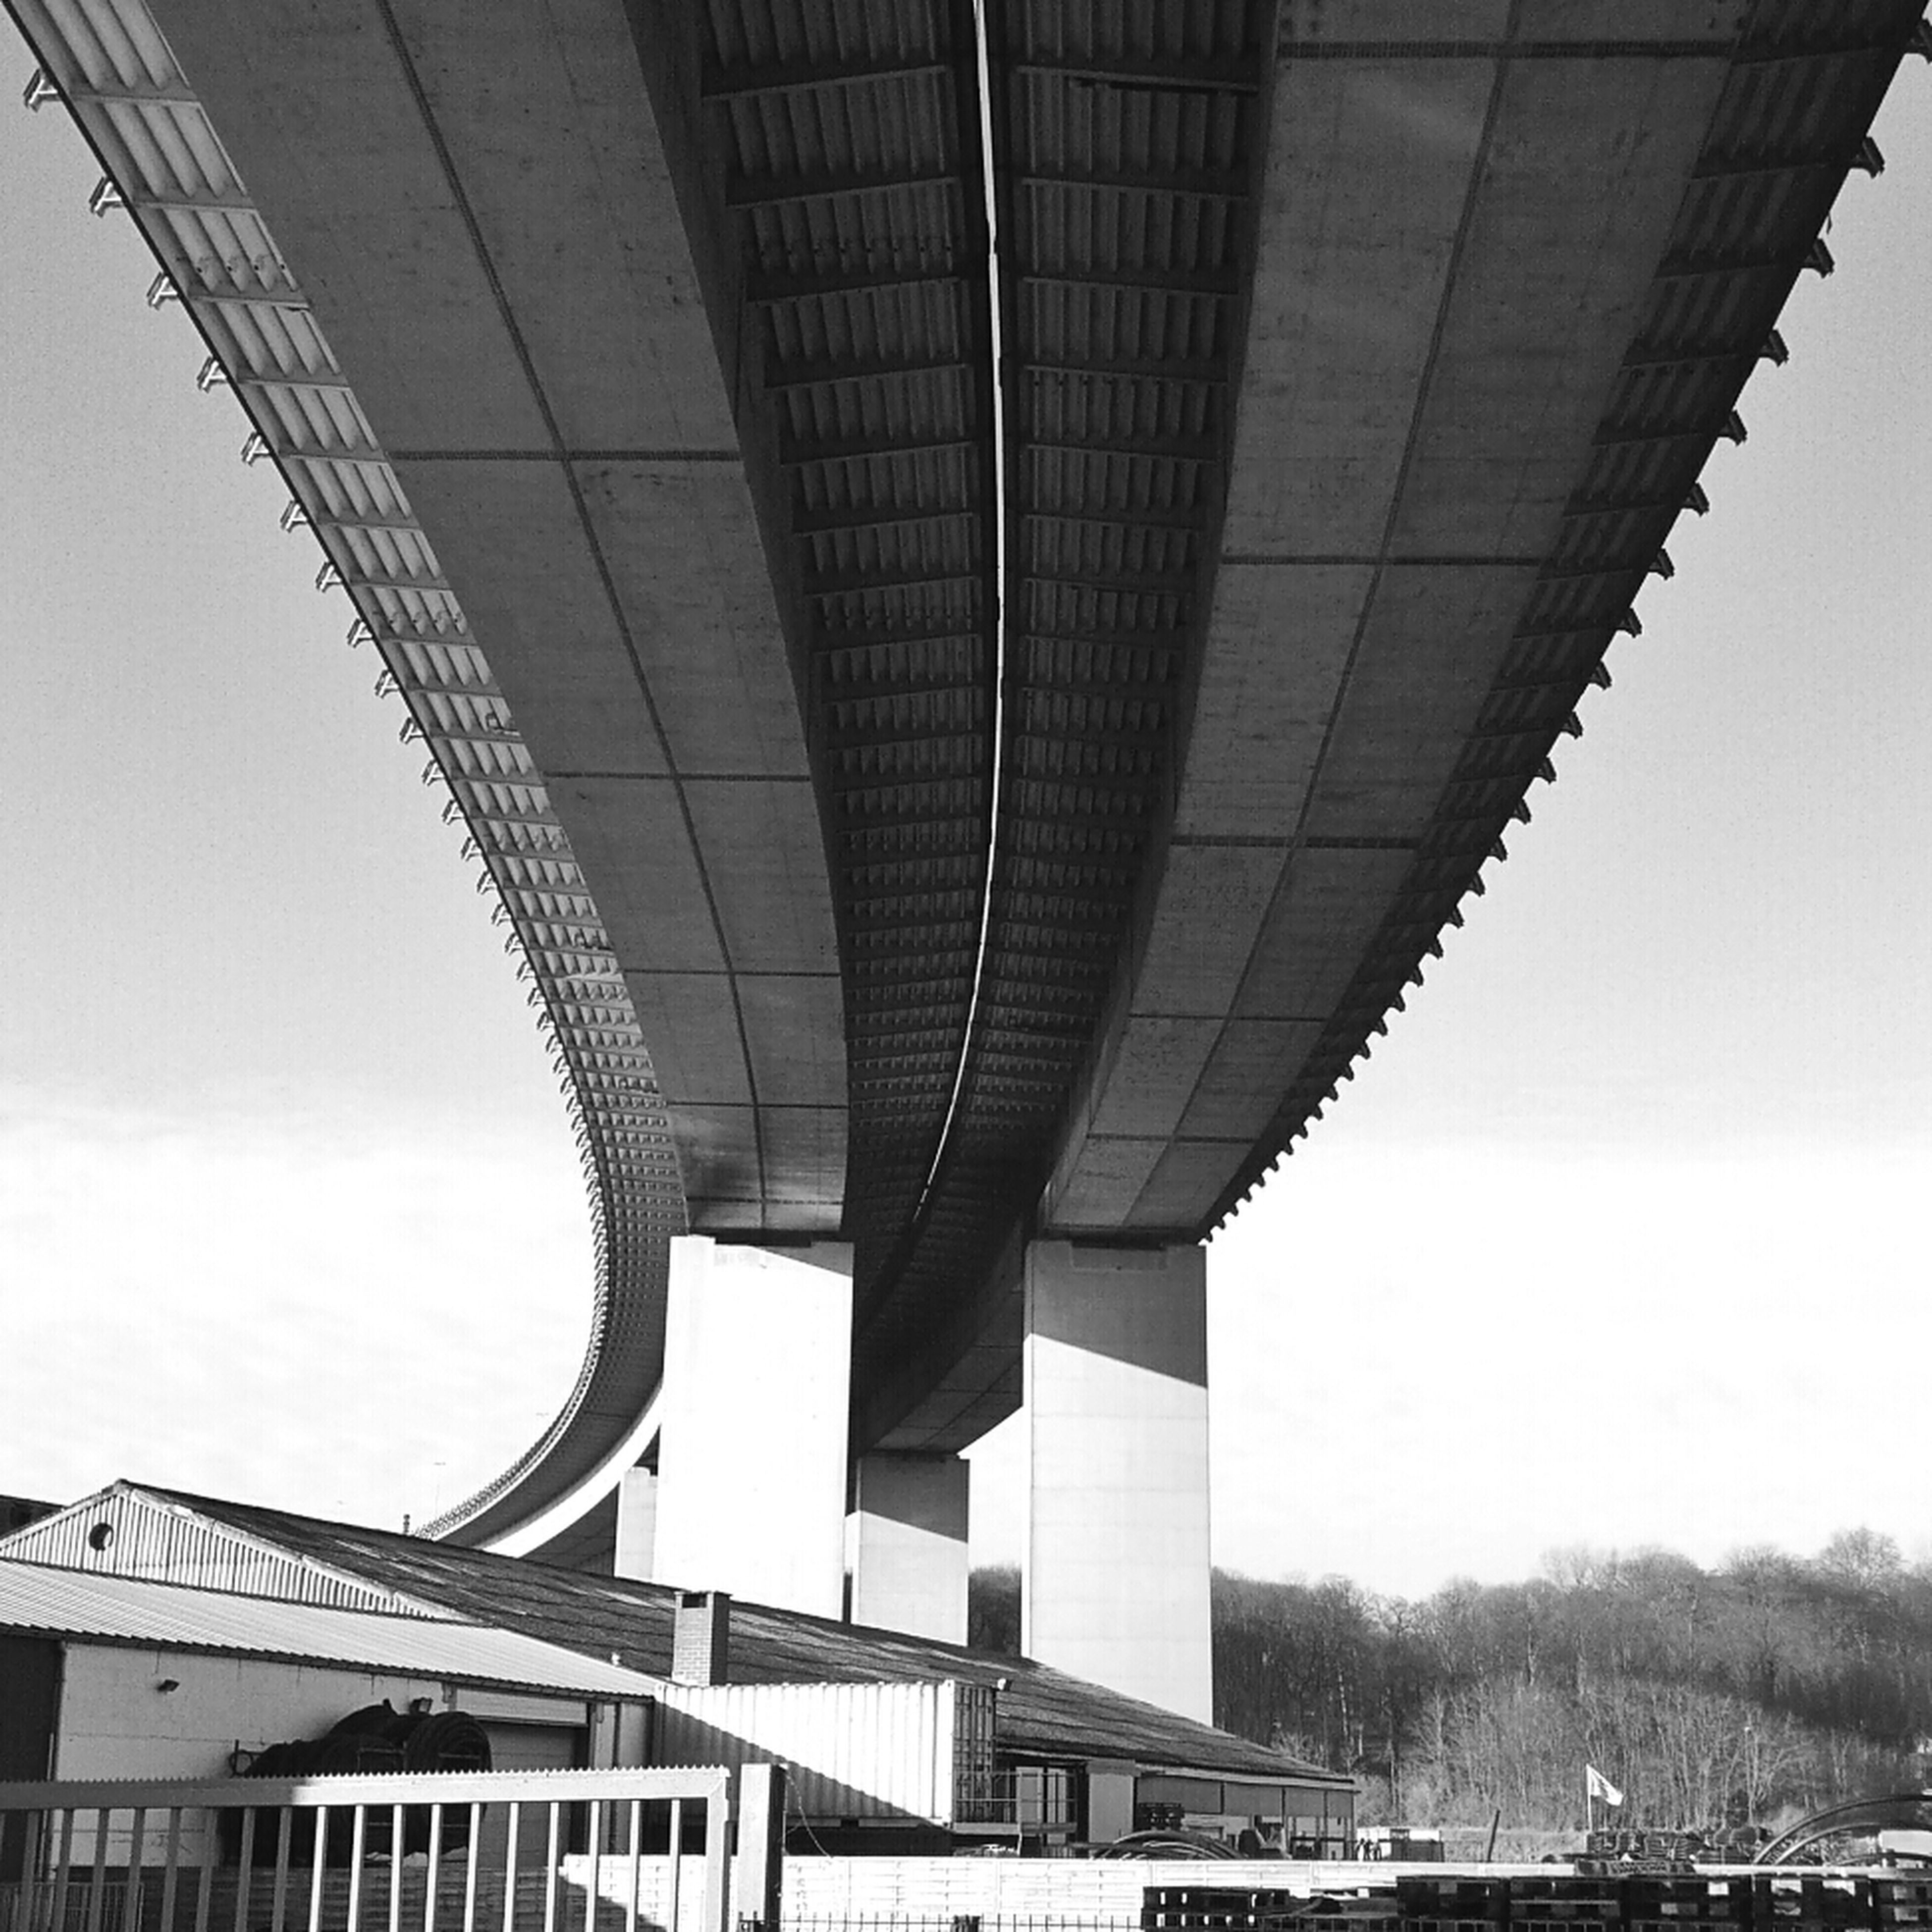 architecture, built structure, building exterior, connection, bridge - man made structure, city, low angle view, modern, engineering, sky, transportation, bridge, skyscraper, office building, day, building, outdoors, no people, river, tall - high